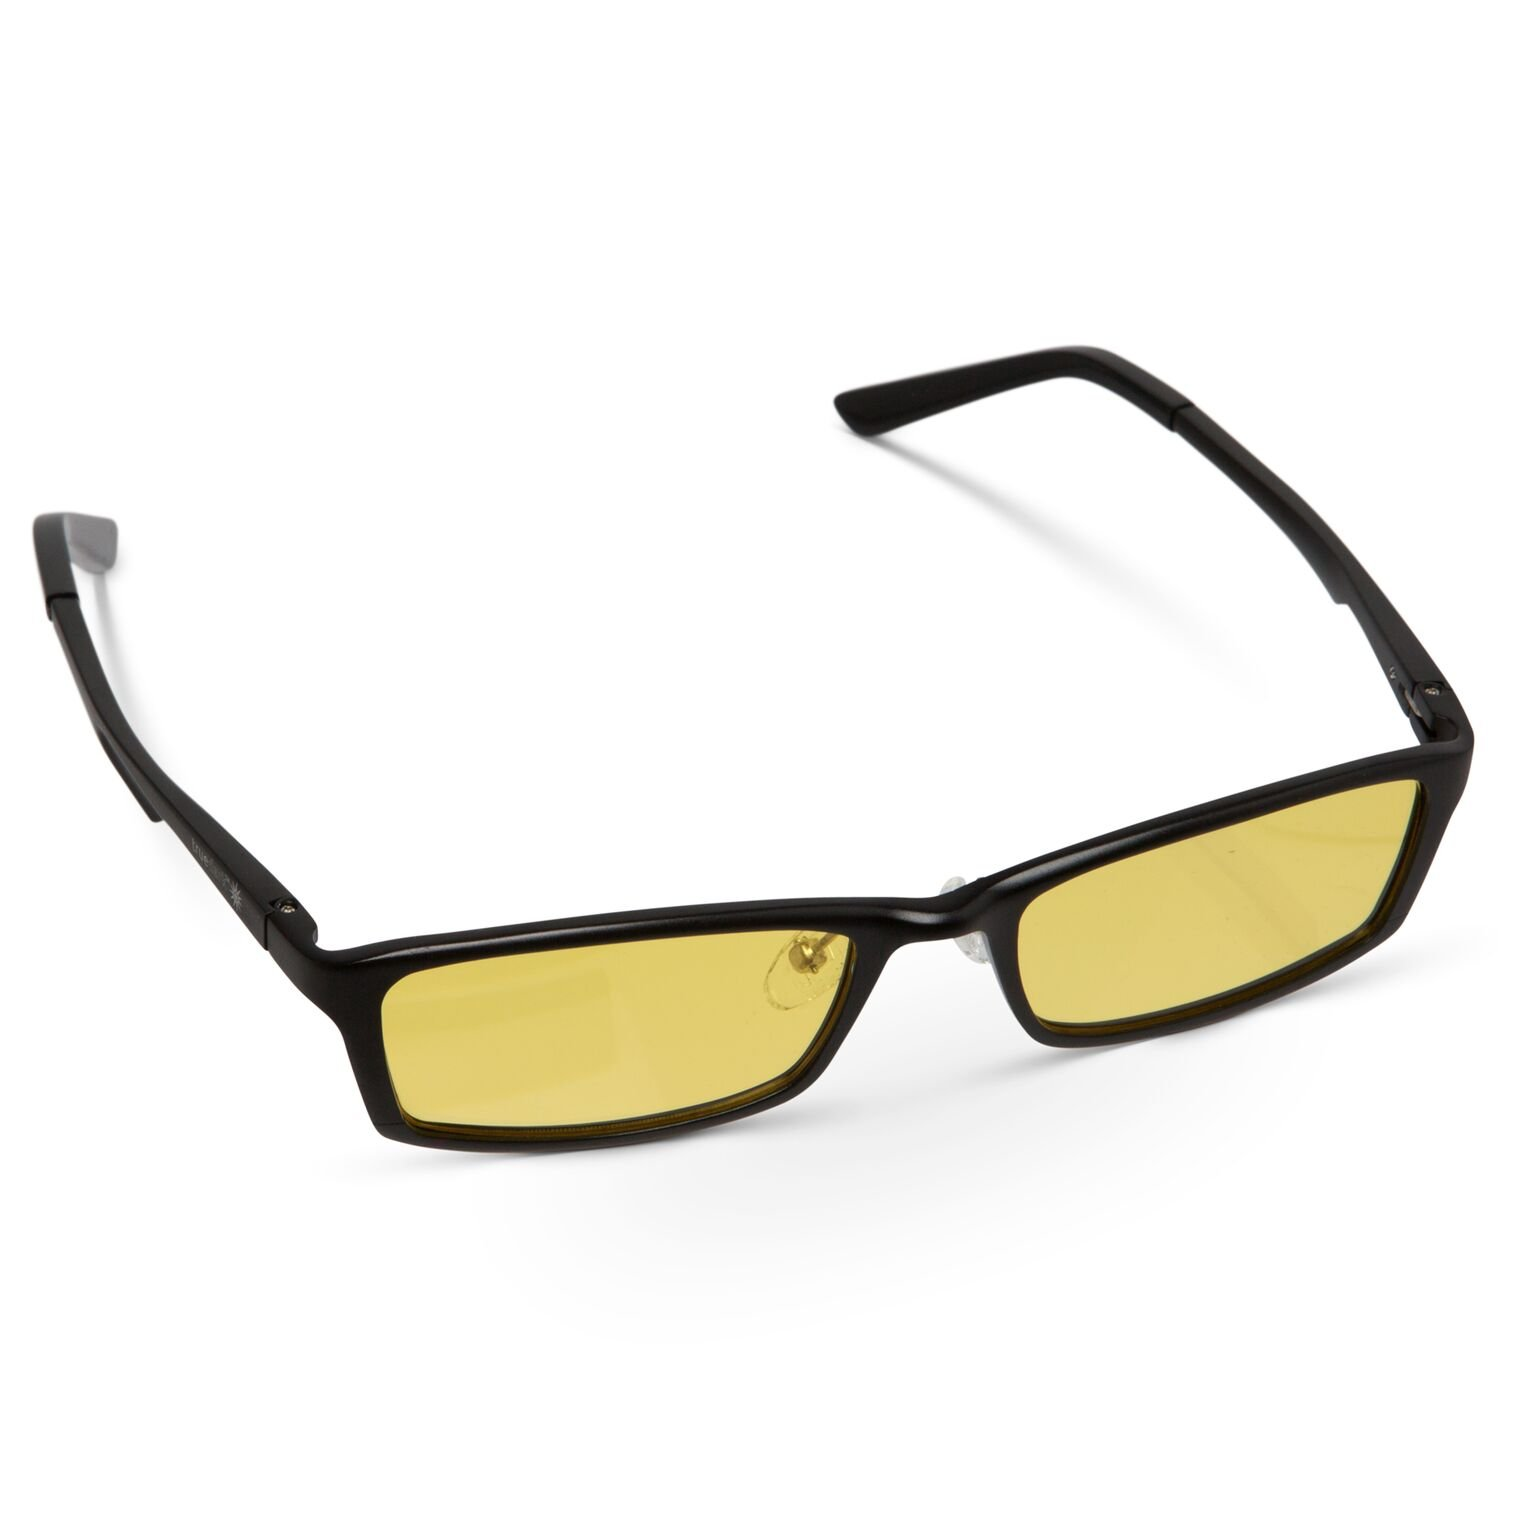 TrueDark Daywalker Elans Blue Light Filtering Glasses - Protect Your Eyes from Harmful Junk Light